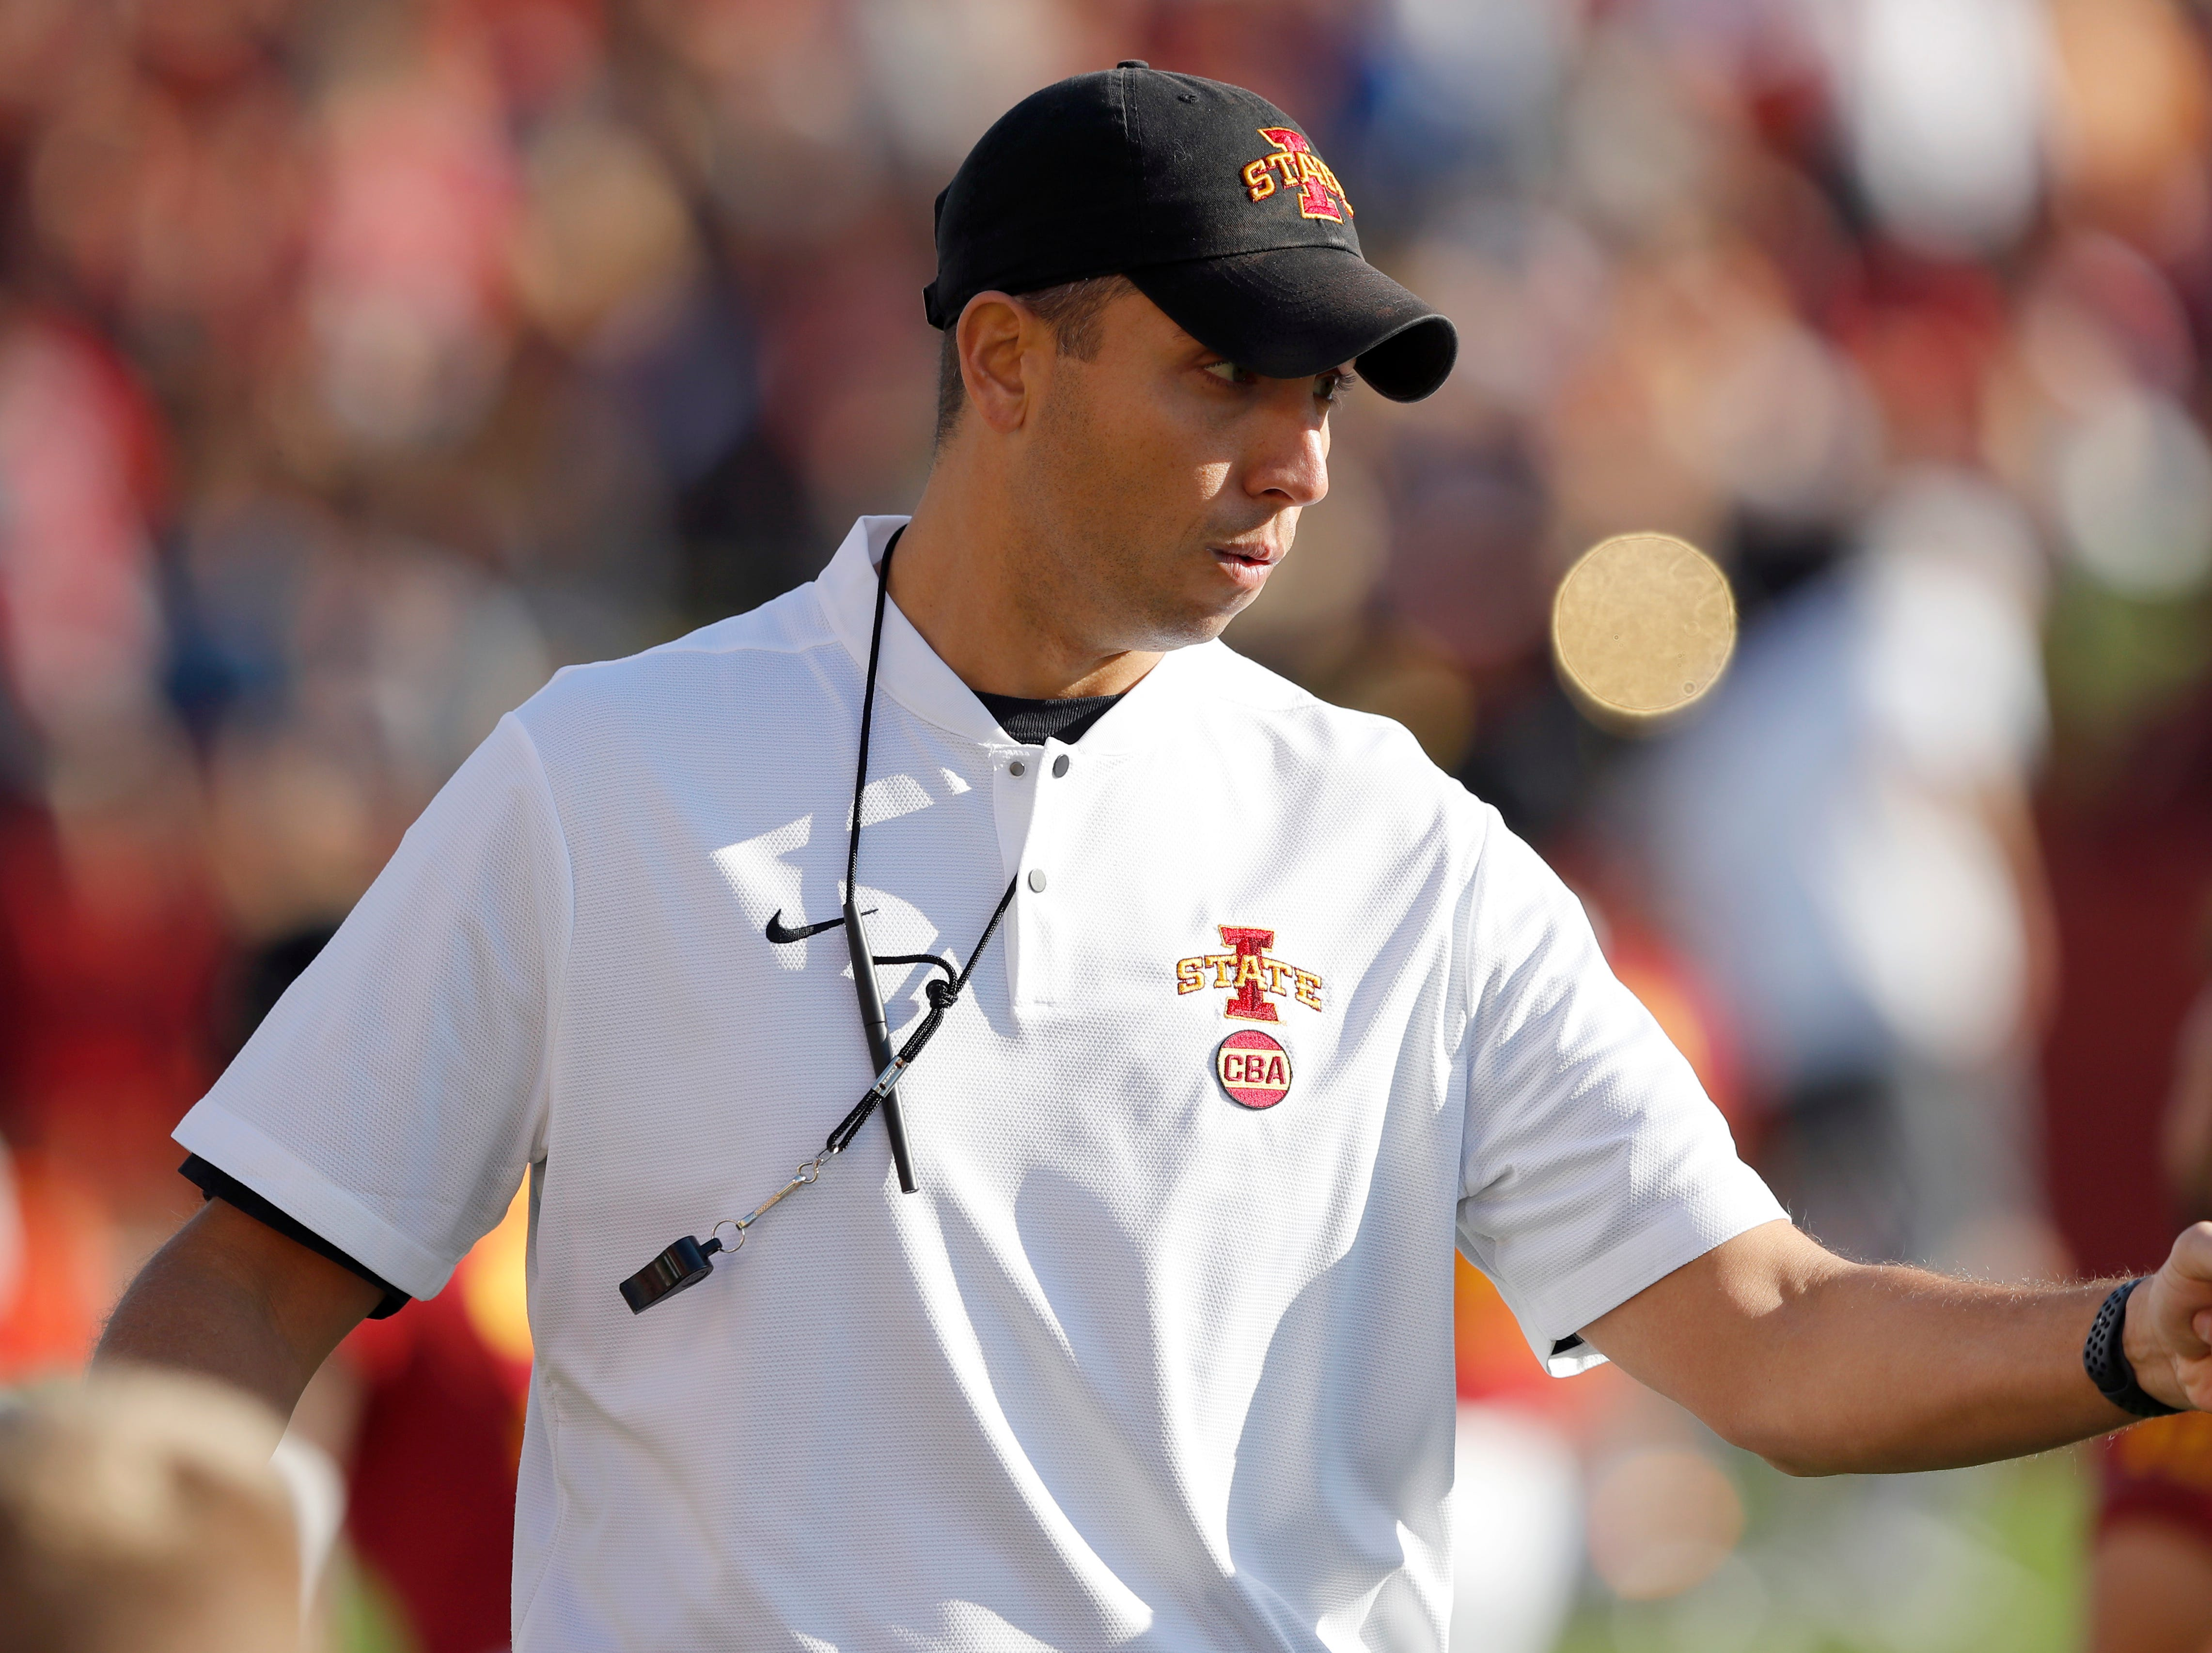 Iowa State head coach Matt Campbell walks on the field before an NCAA college football game against Texas Tech, Saturday, Oct. 27, 2018, in Ames, Iowa. (AP Photo/Charlie Neibergall)